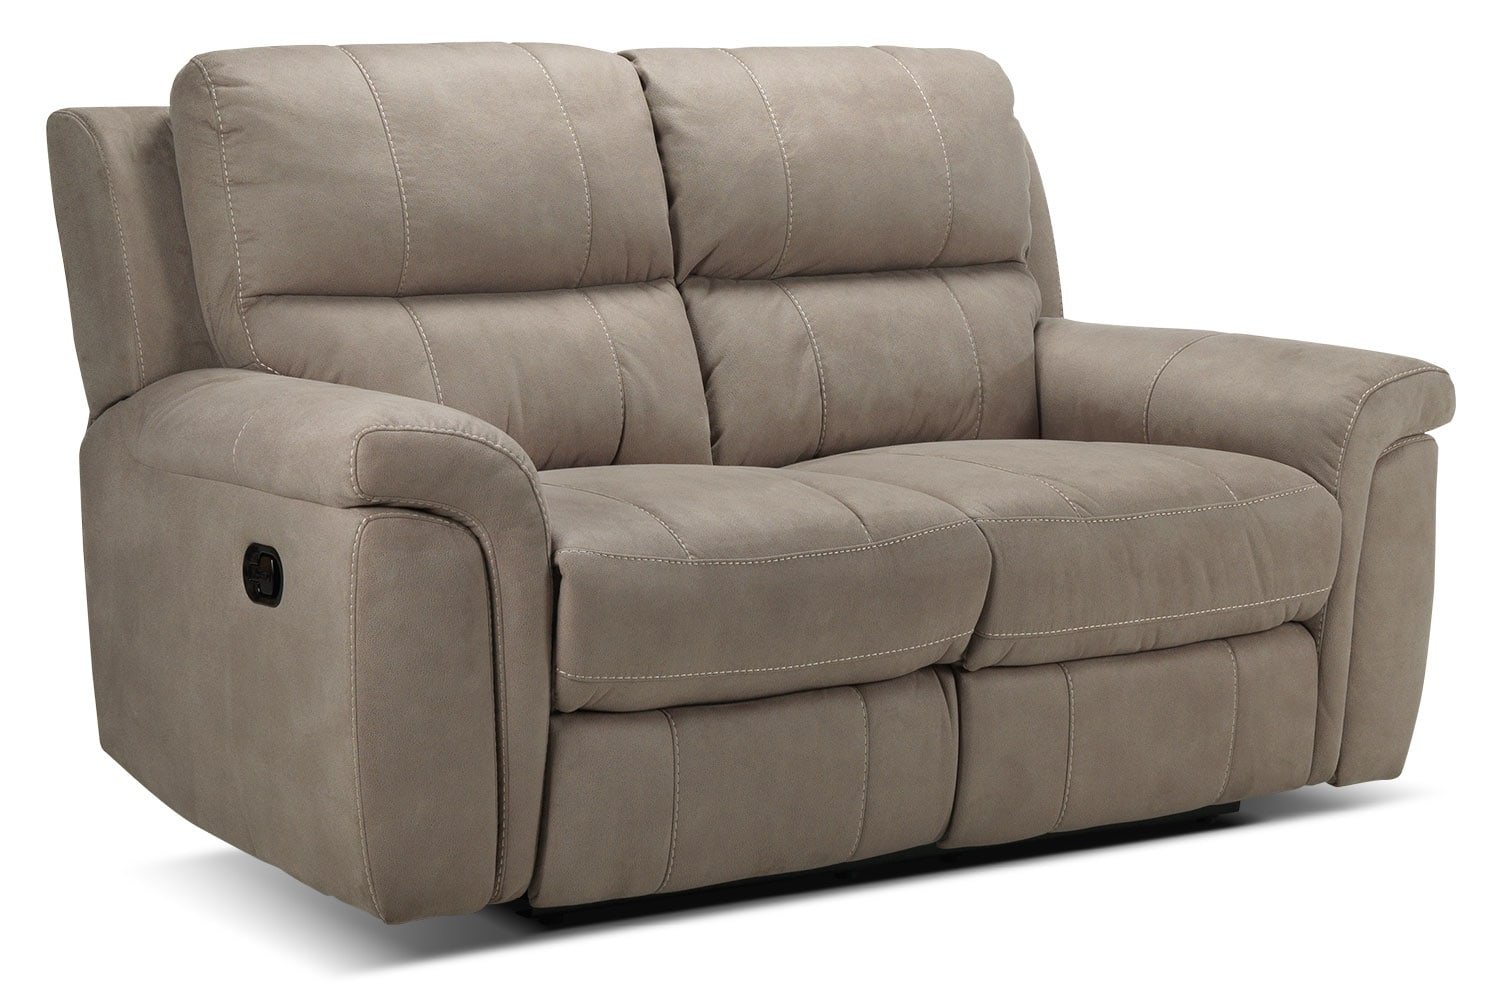 Roarke Reclining Loveseat - Silver Grey